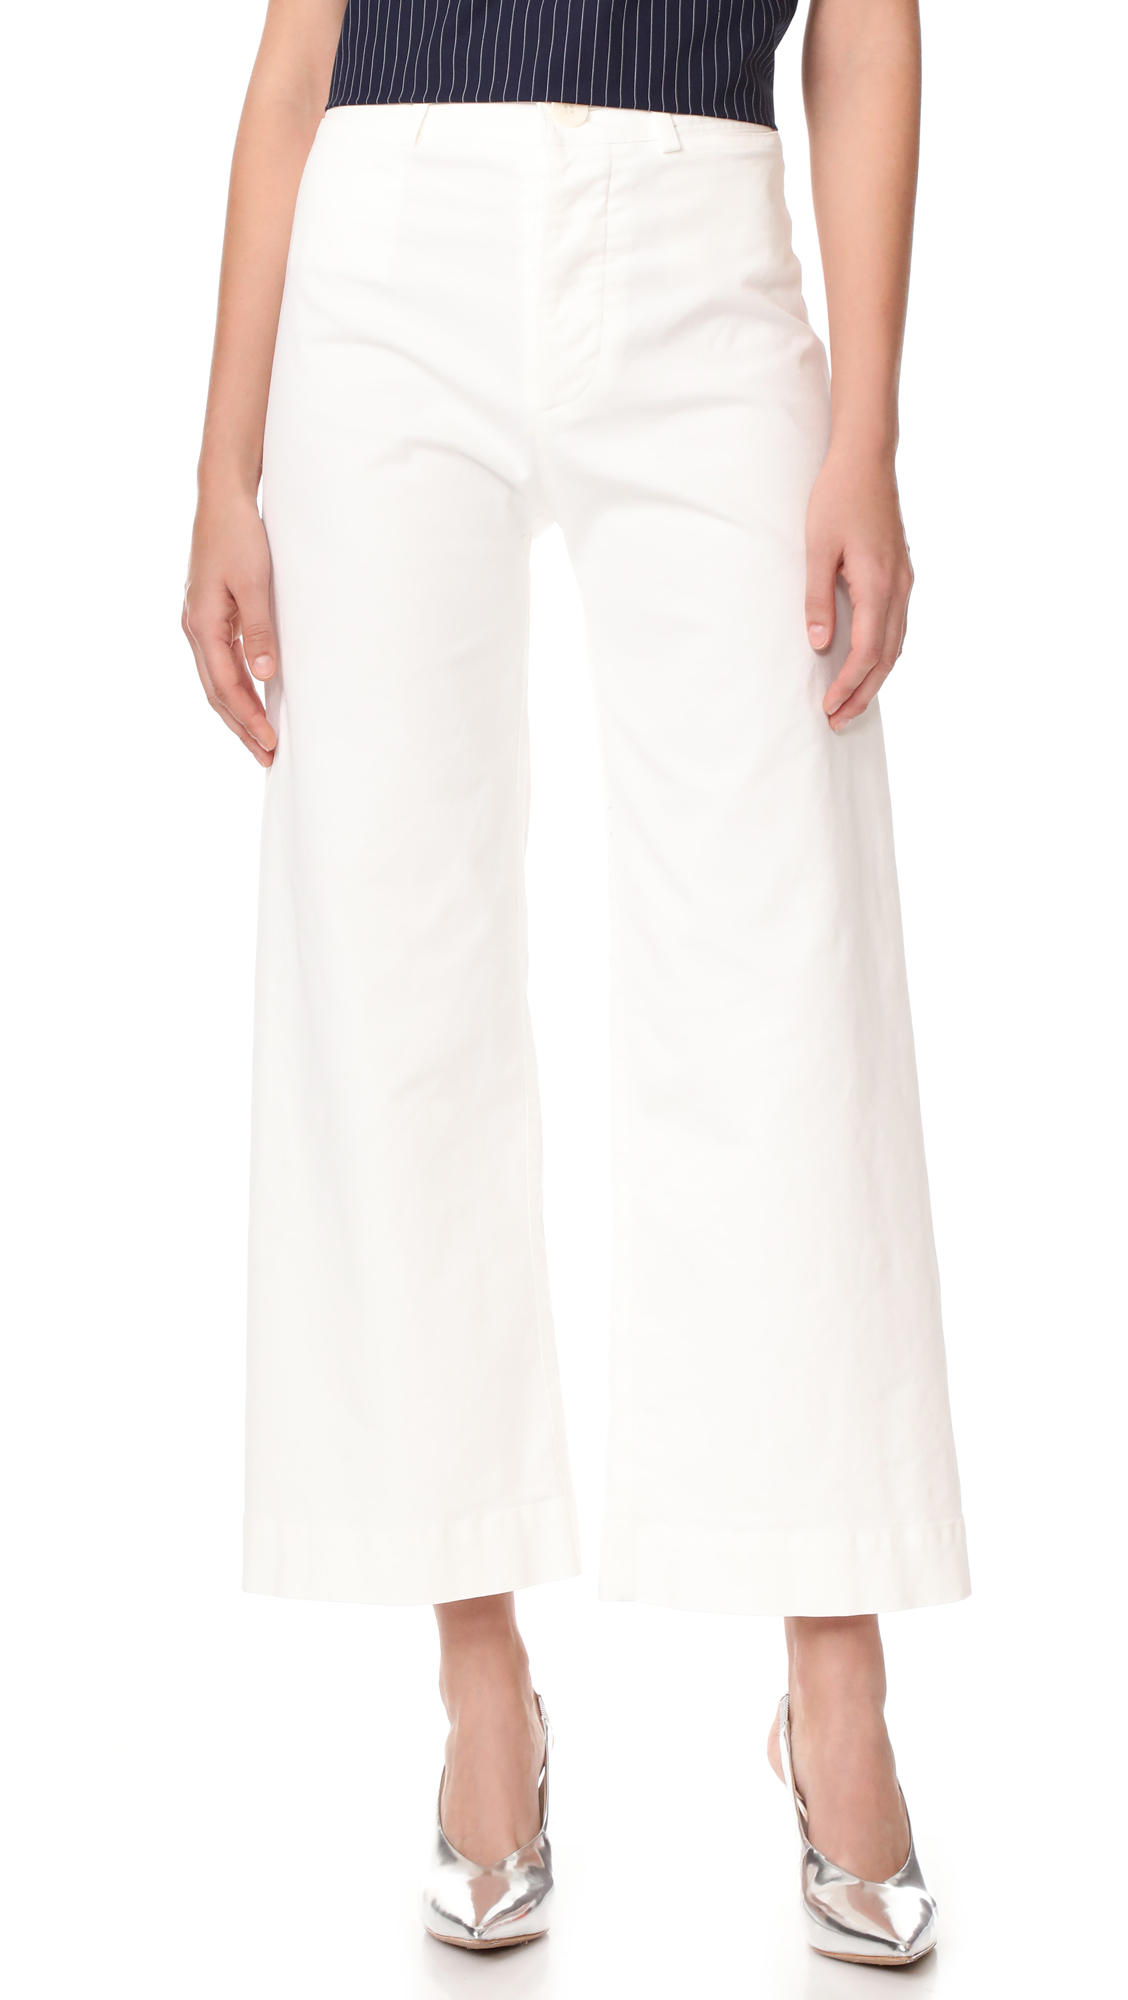 Emerson Thorpe Ryan High Waisted Wide Leg Pants - White